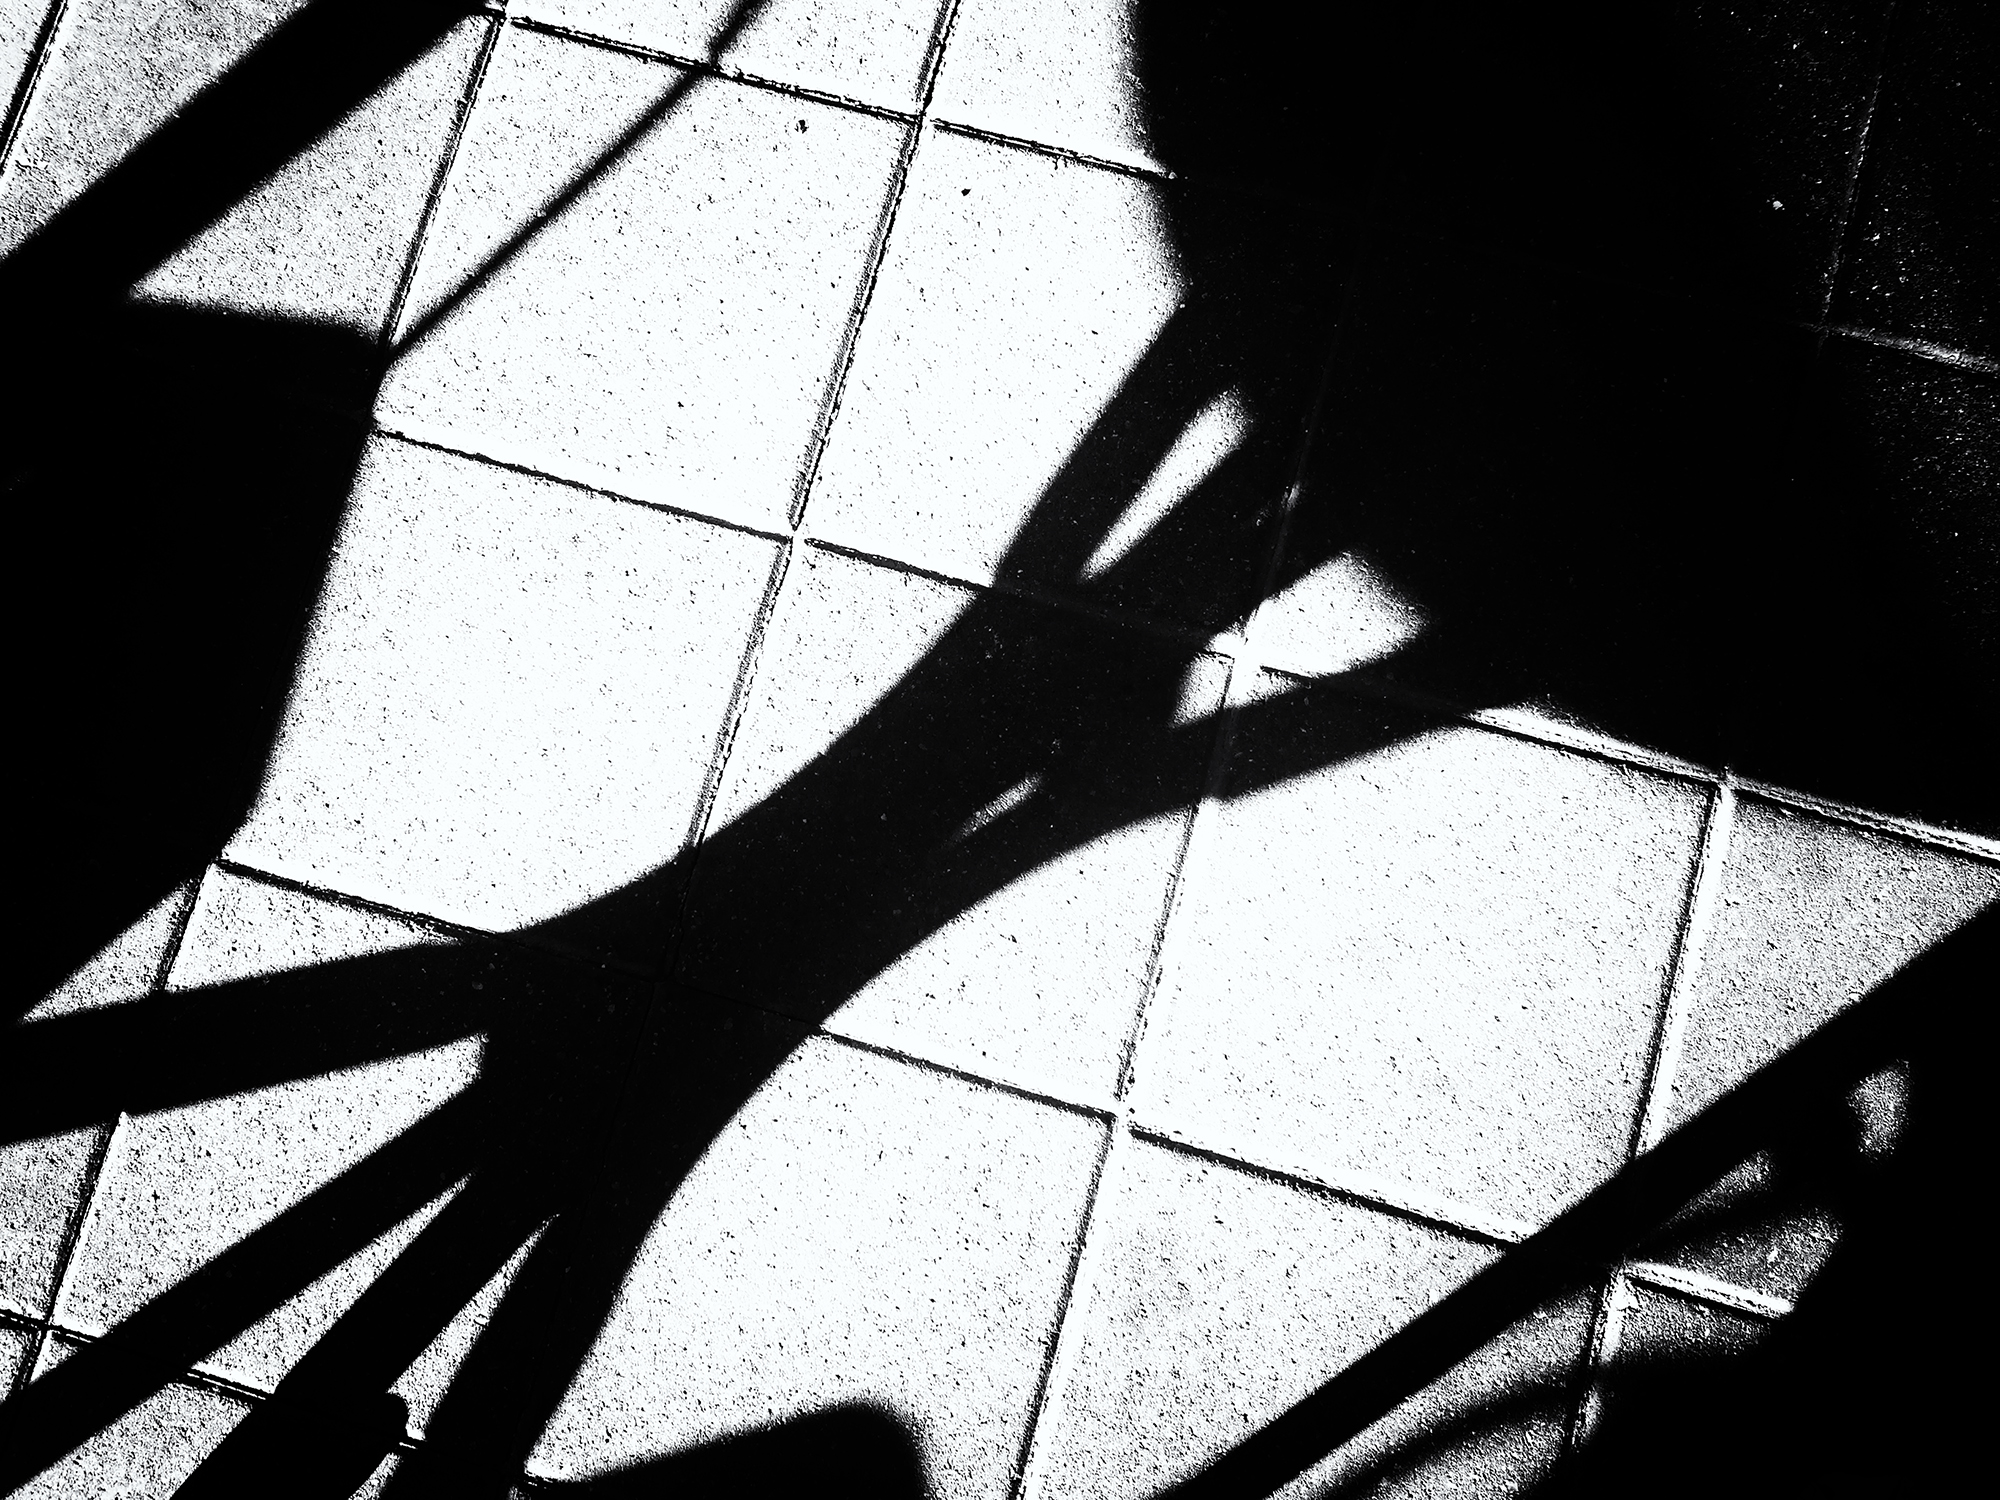 Mall Shadows, #5. Boulder, Colorado, 2016